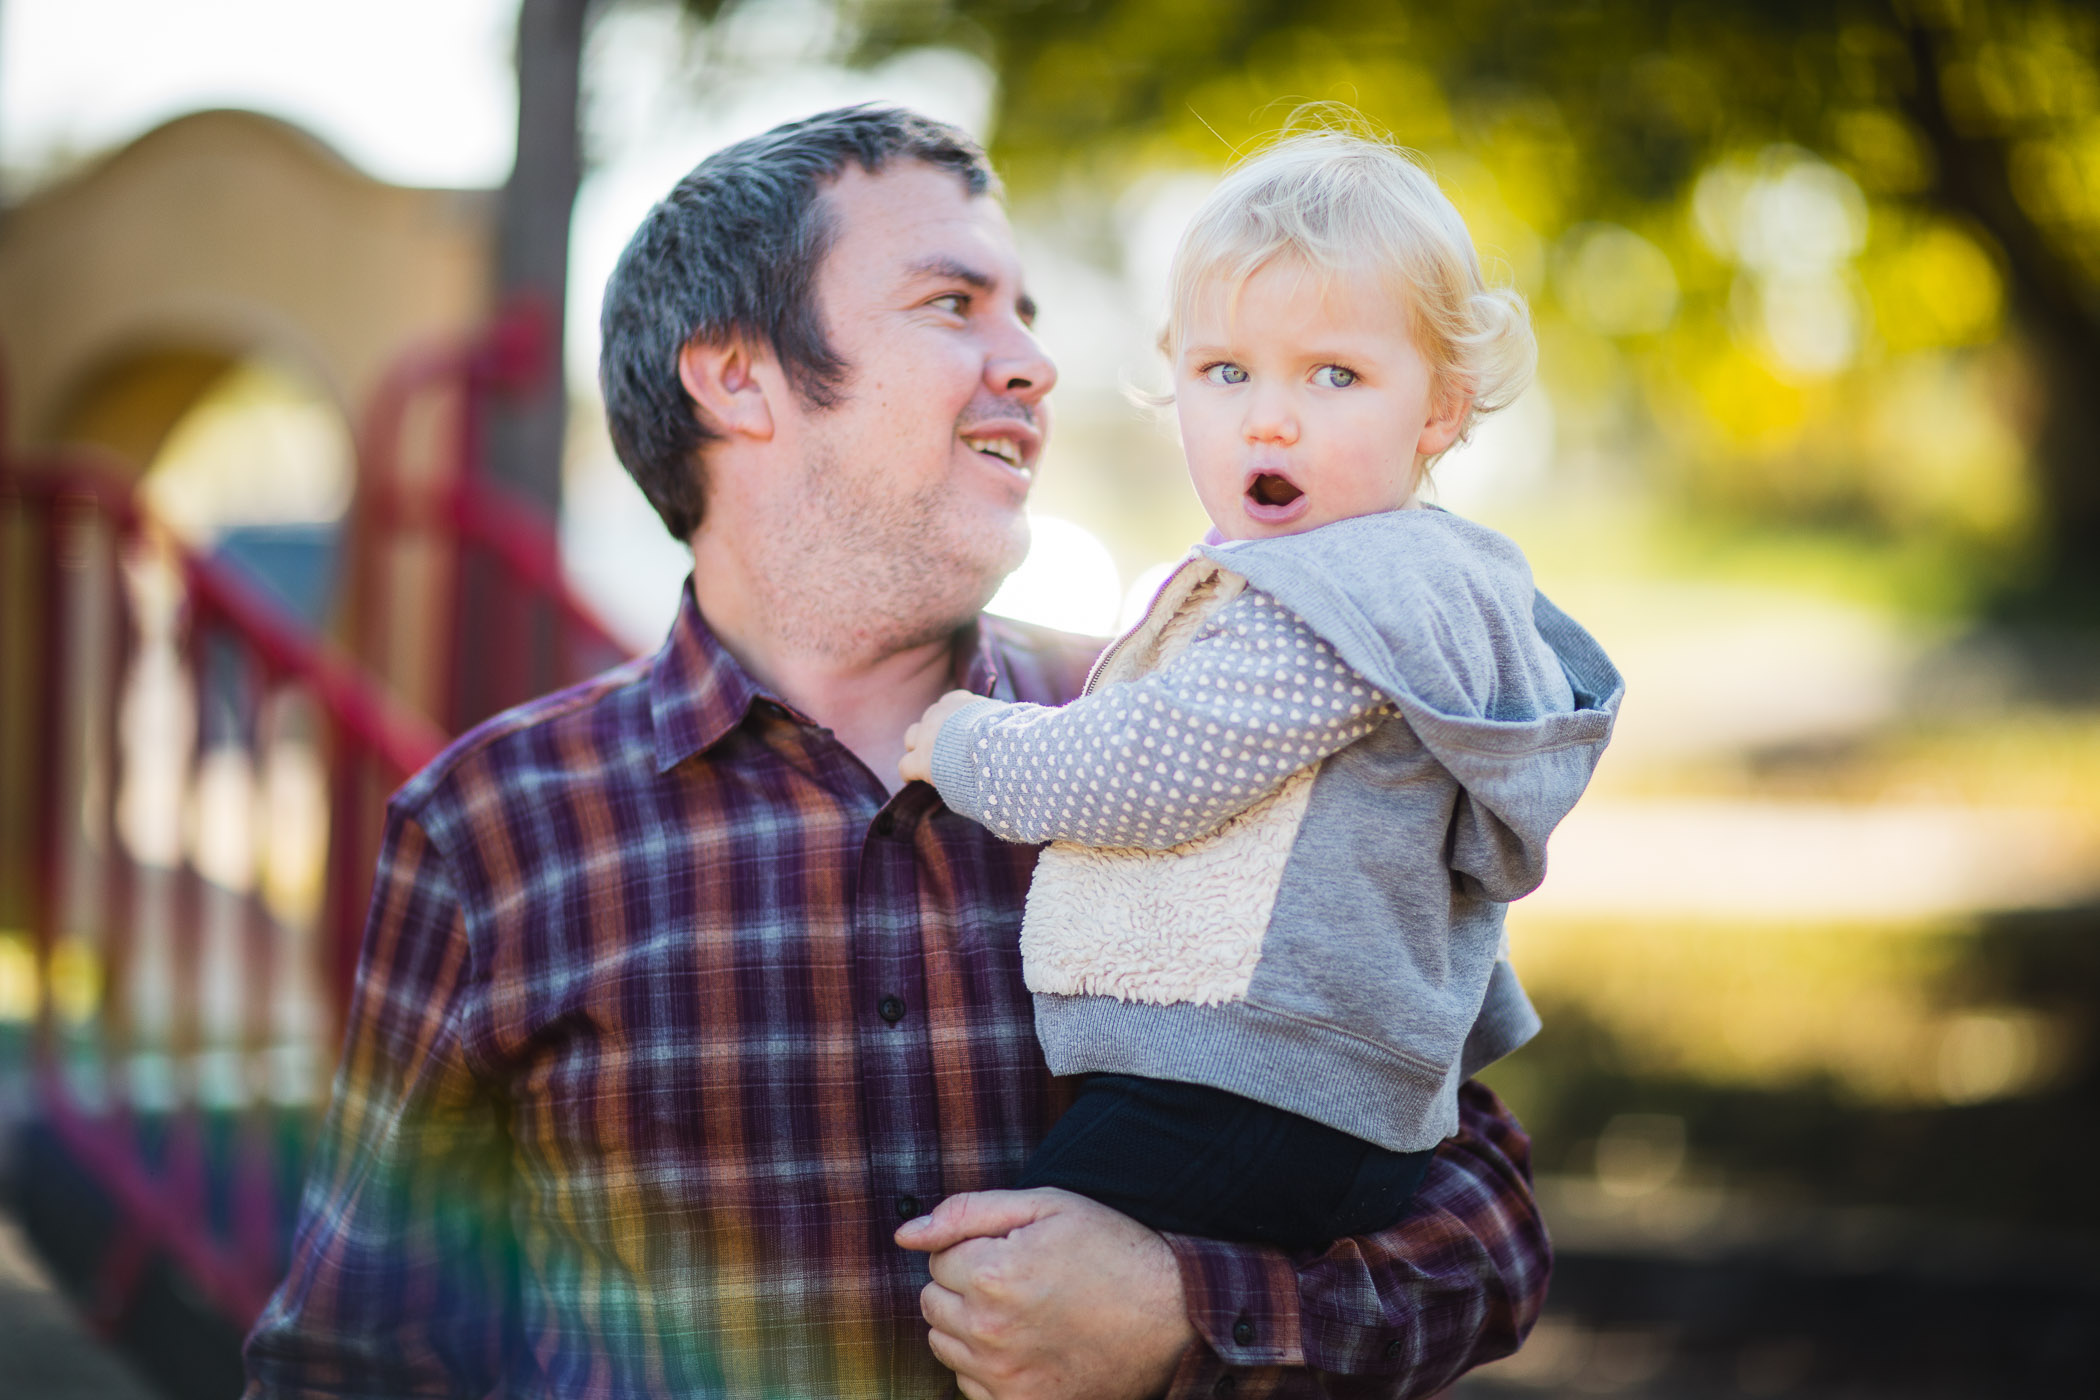 A Colorful Two-Part Autumn Family Session from Felipe 27